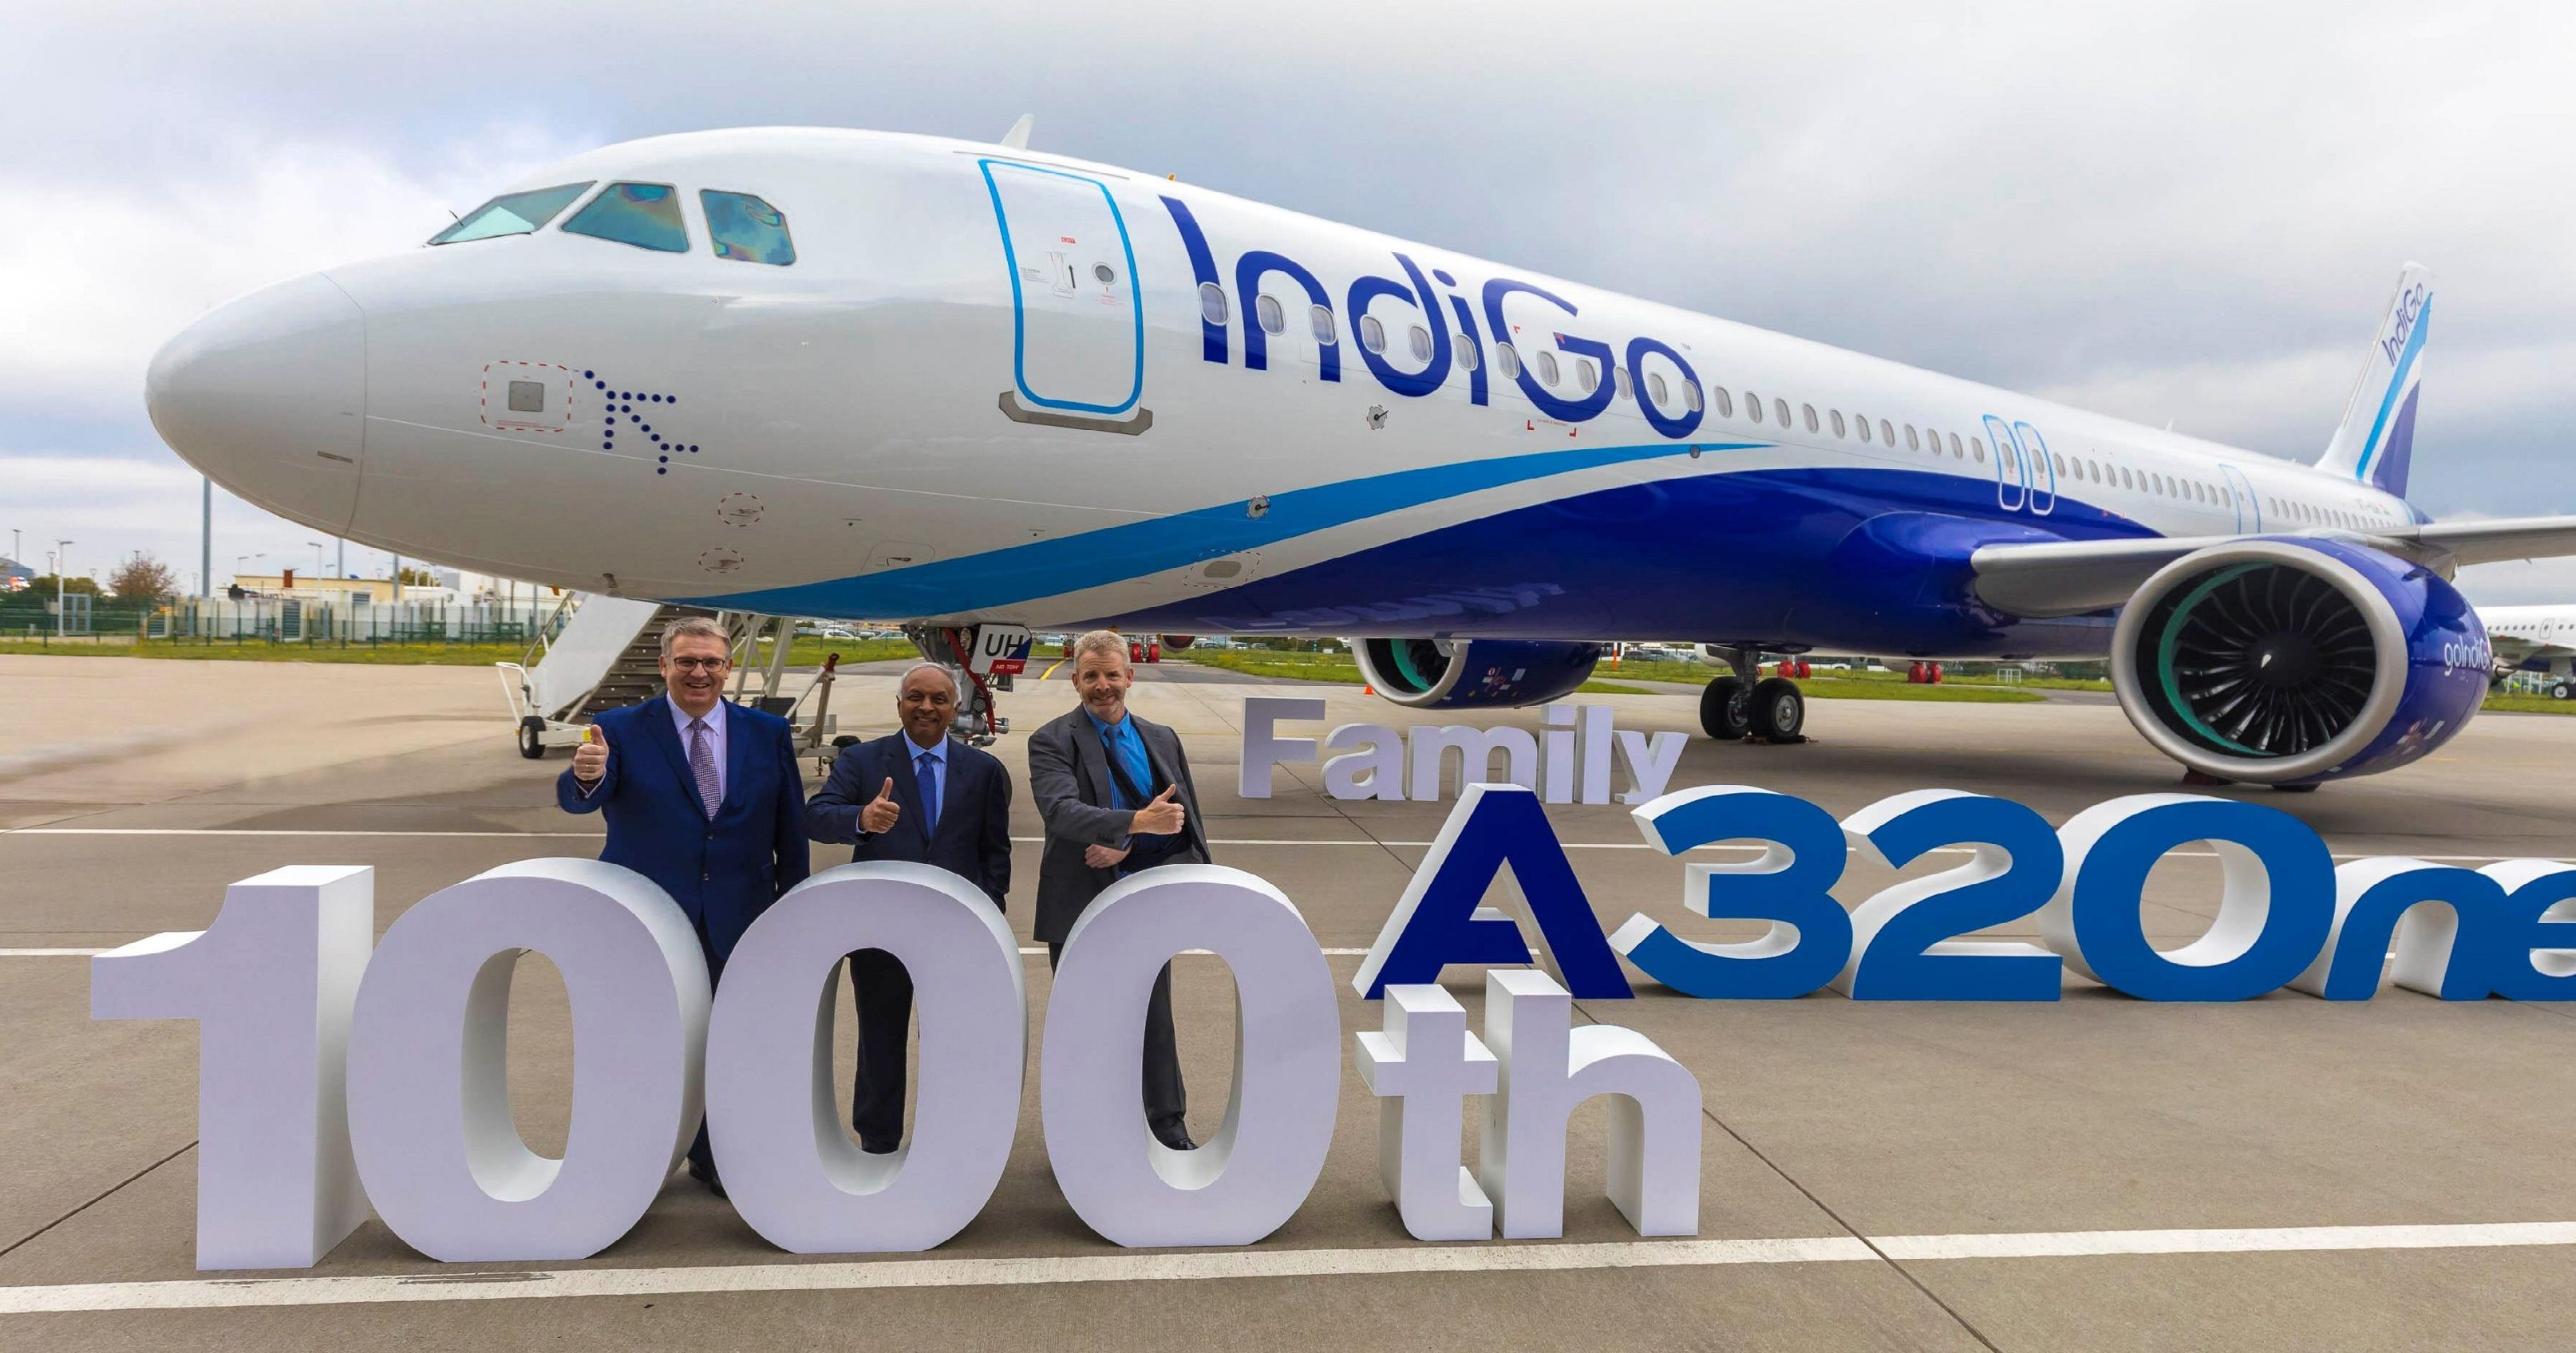 Airbus Delivers 1,000th A320neo Family Aircraft